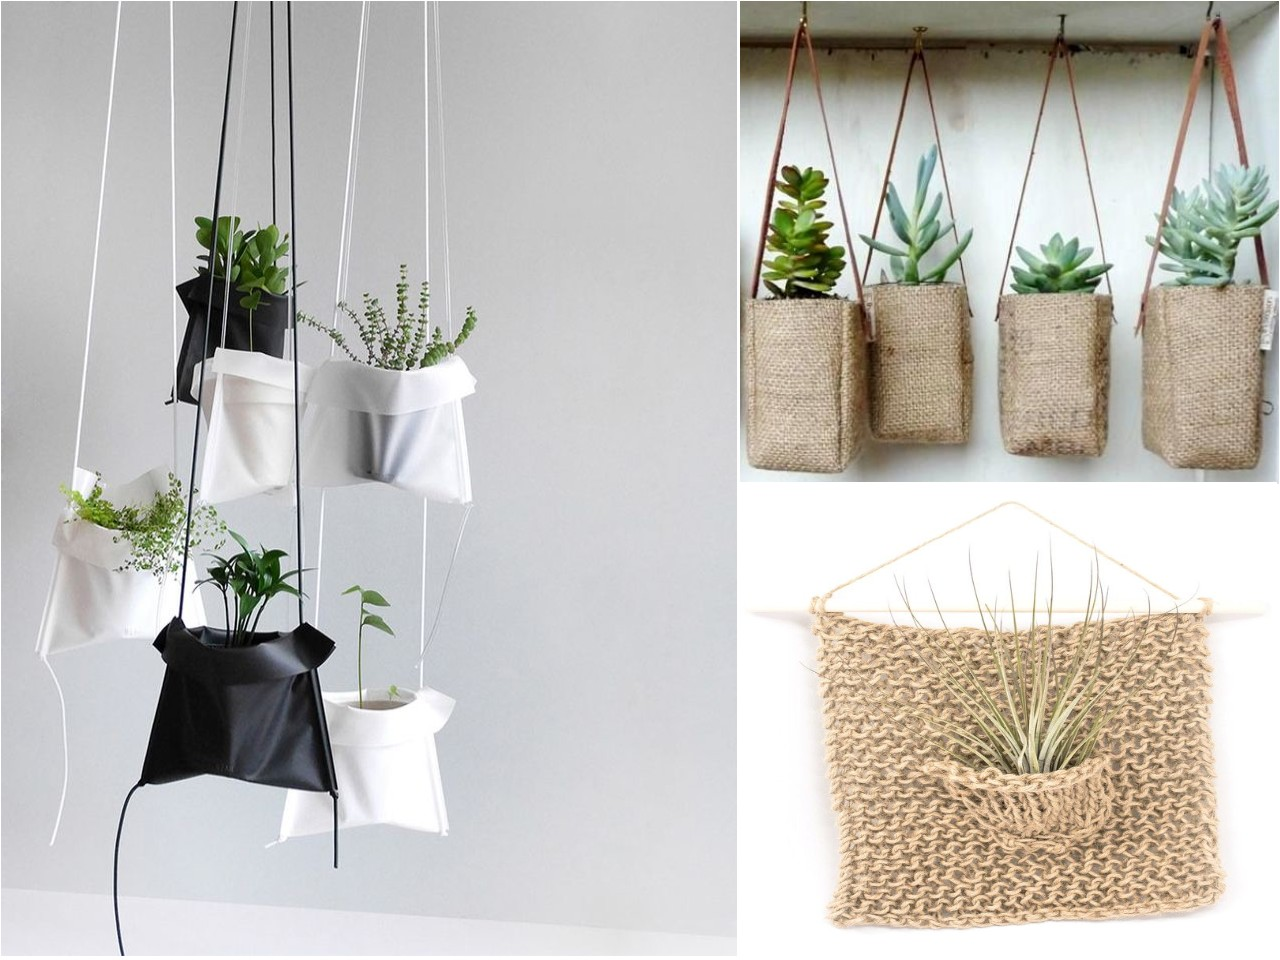 10 ideas de decoraci n con plantas colgantes for Piedras para decorar plantas